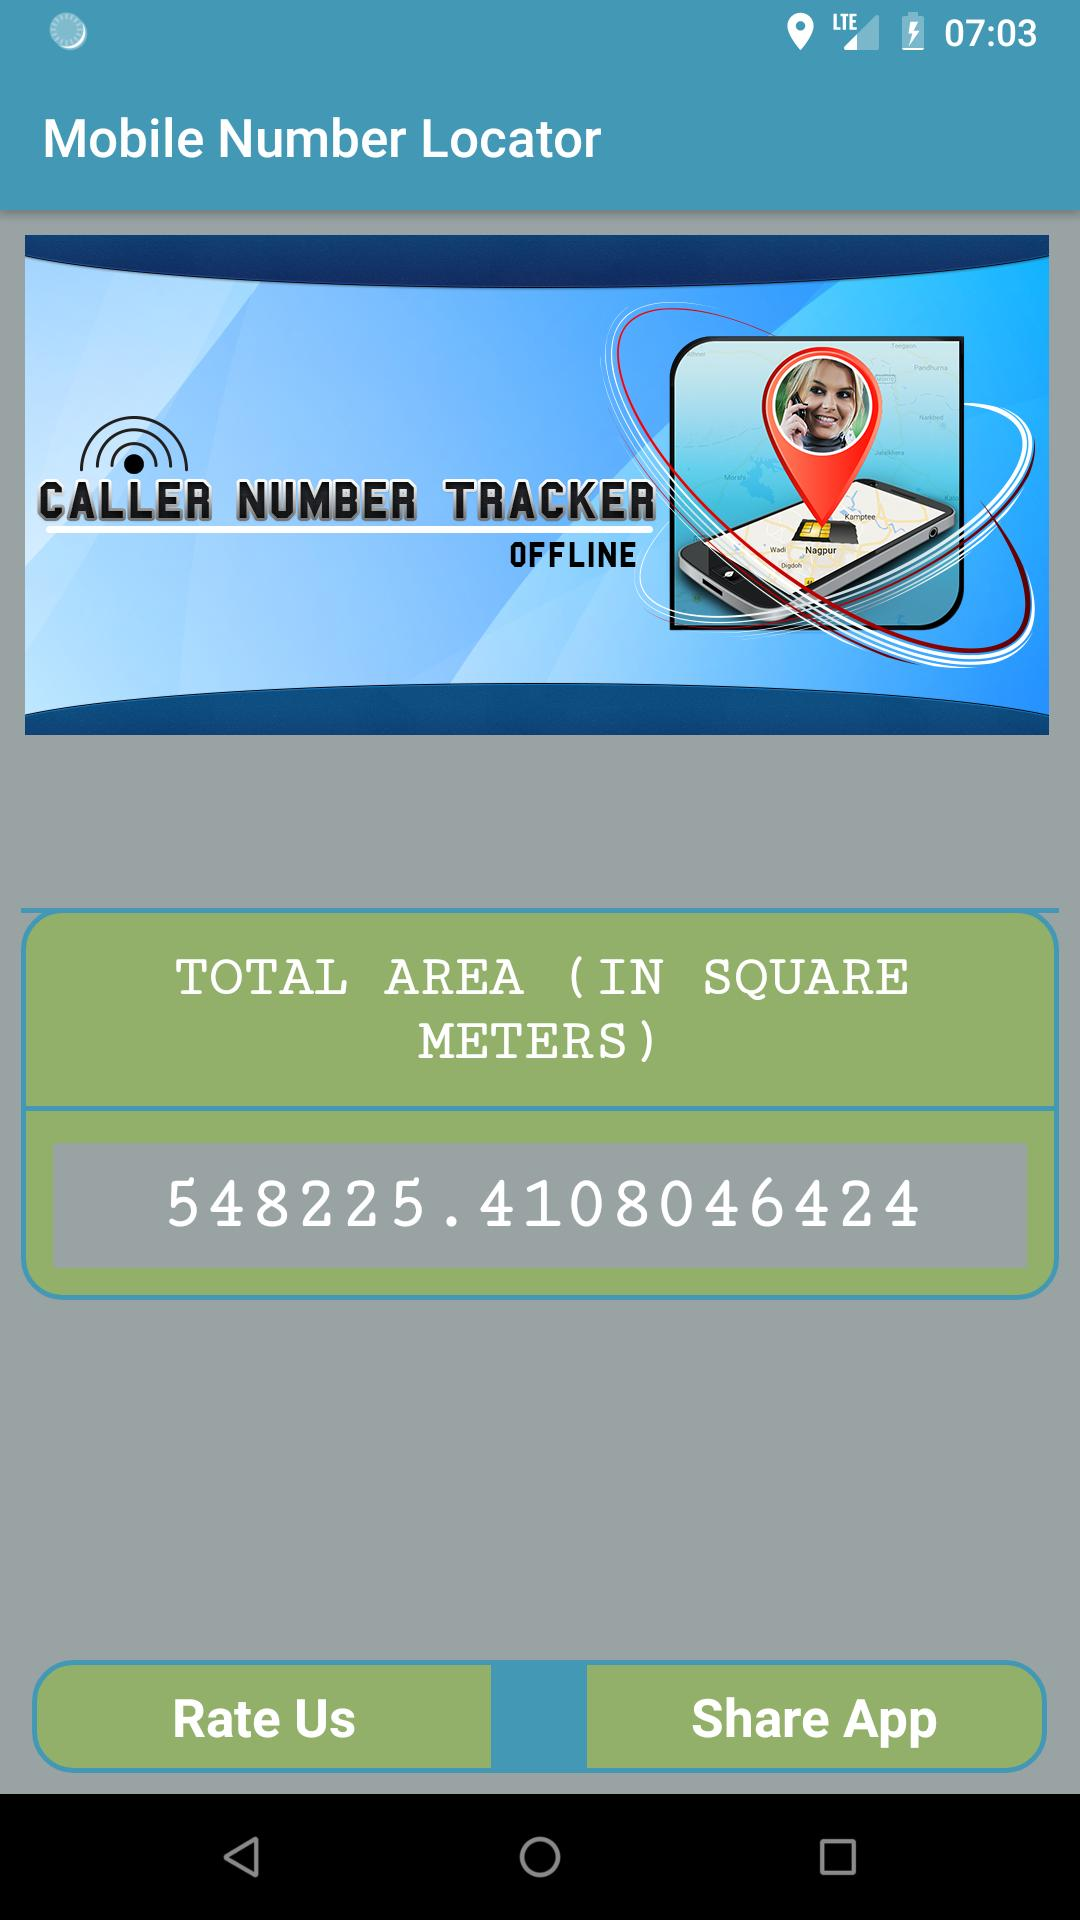 Live Mobile Number Locator for Android - APK Download